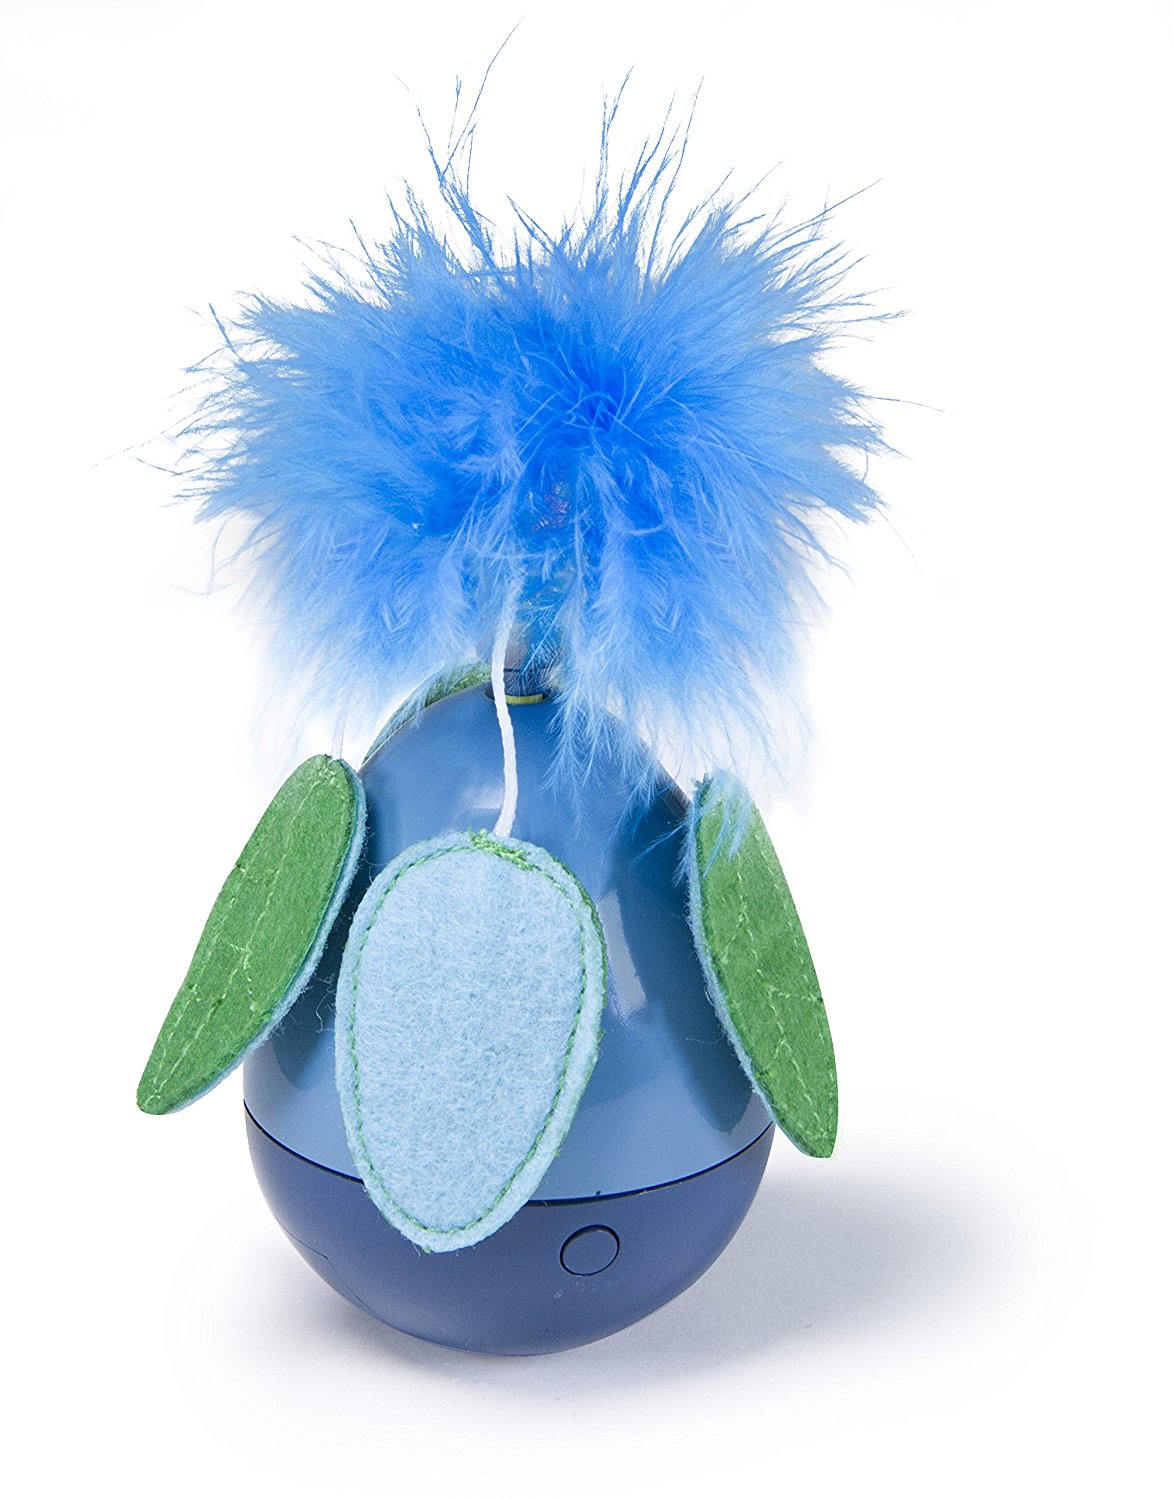 Dizzy Thing Spinning Cat Toy, Blue, Spinning feathery toy captivates cats with erratic, unpredictable... by